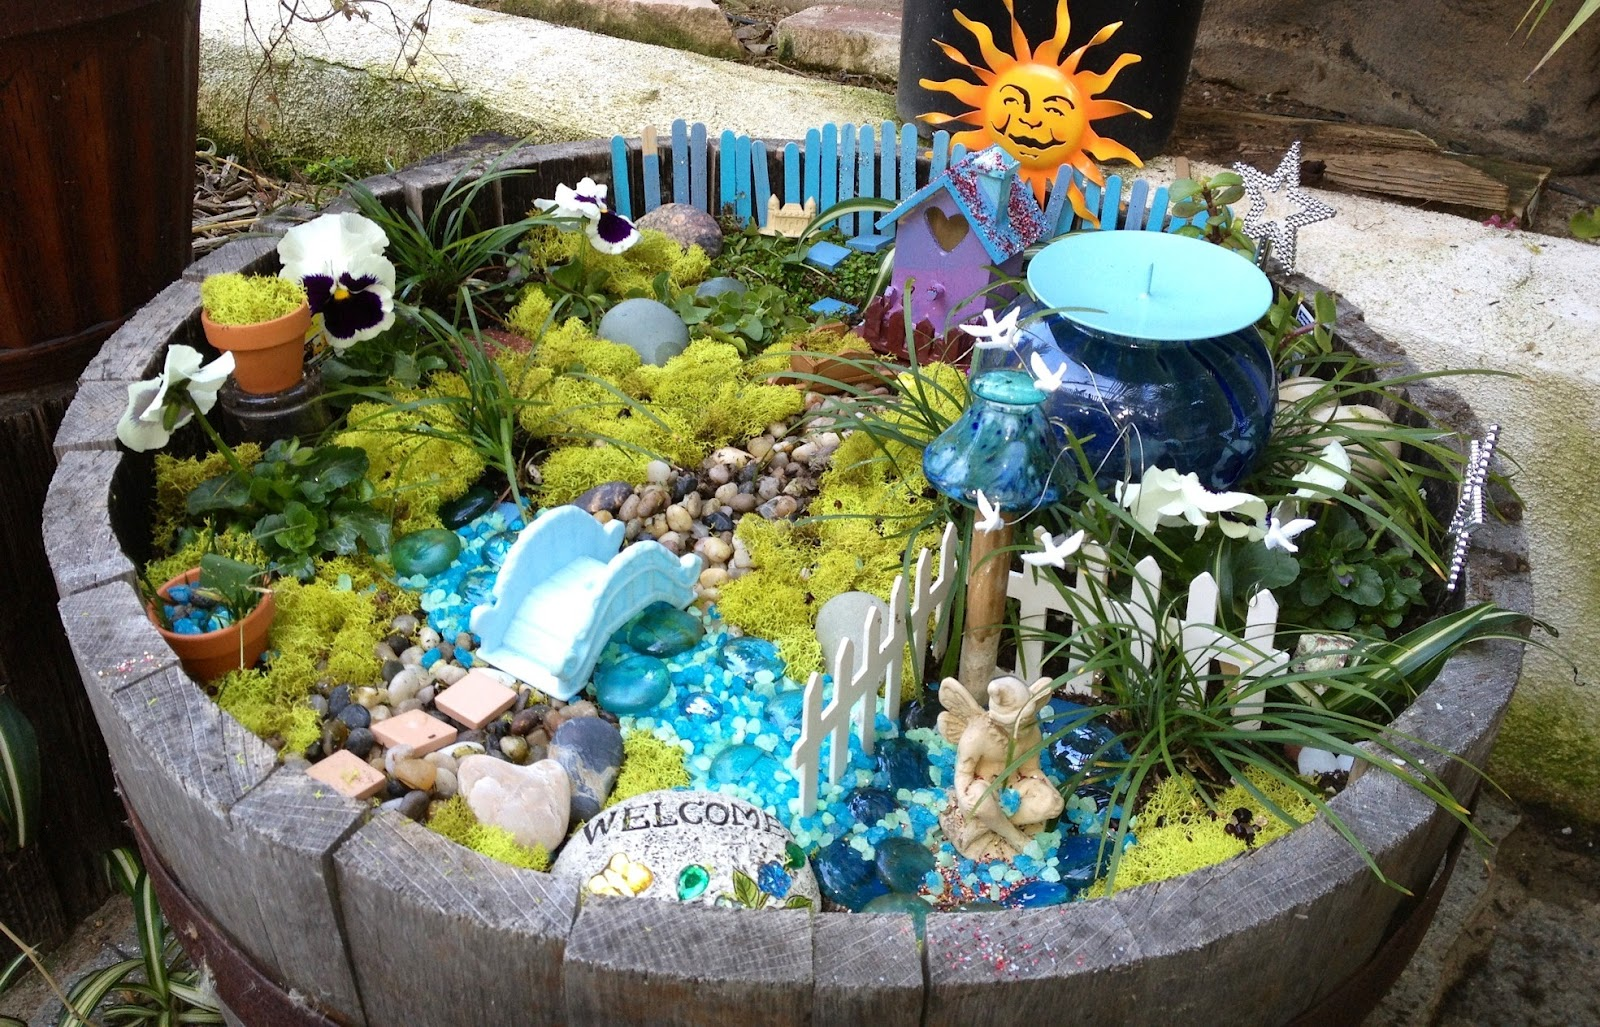 The concoctions of my life fairy gardens frolics and no Small garden fairies